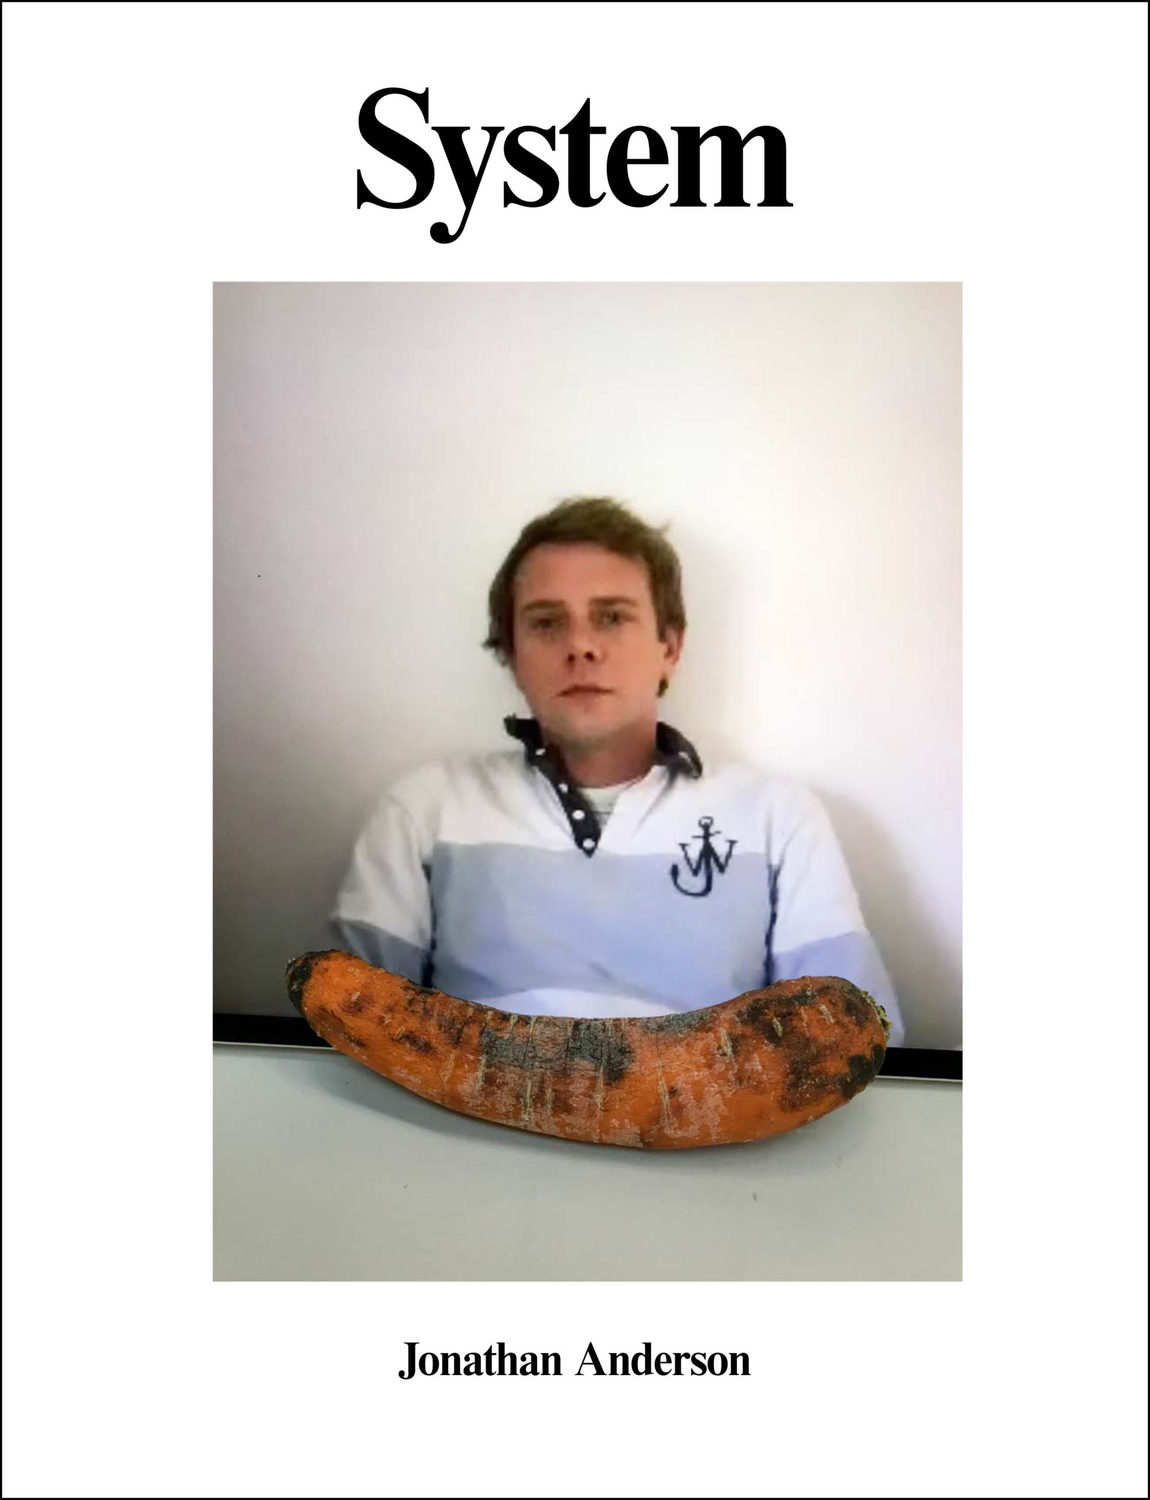 SYSTEM15-COVER-Jonathan-Anderson-scaled.jpg